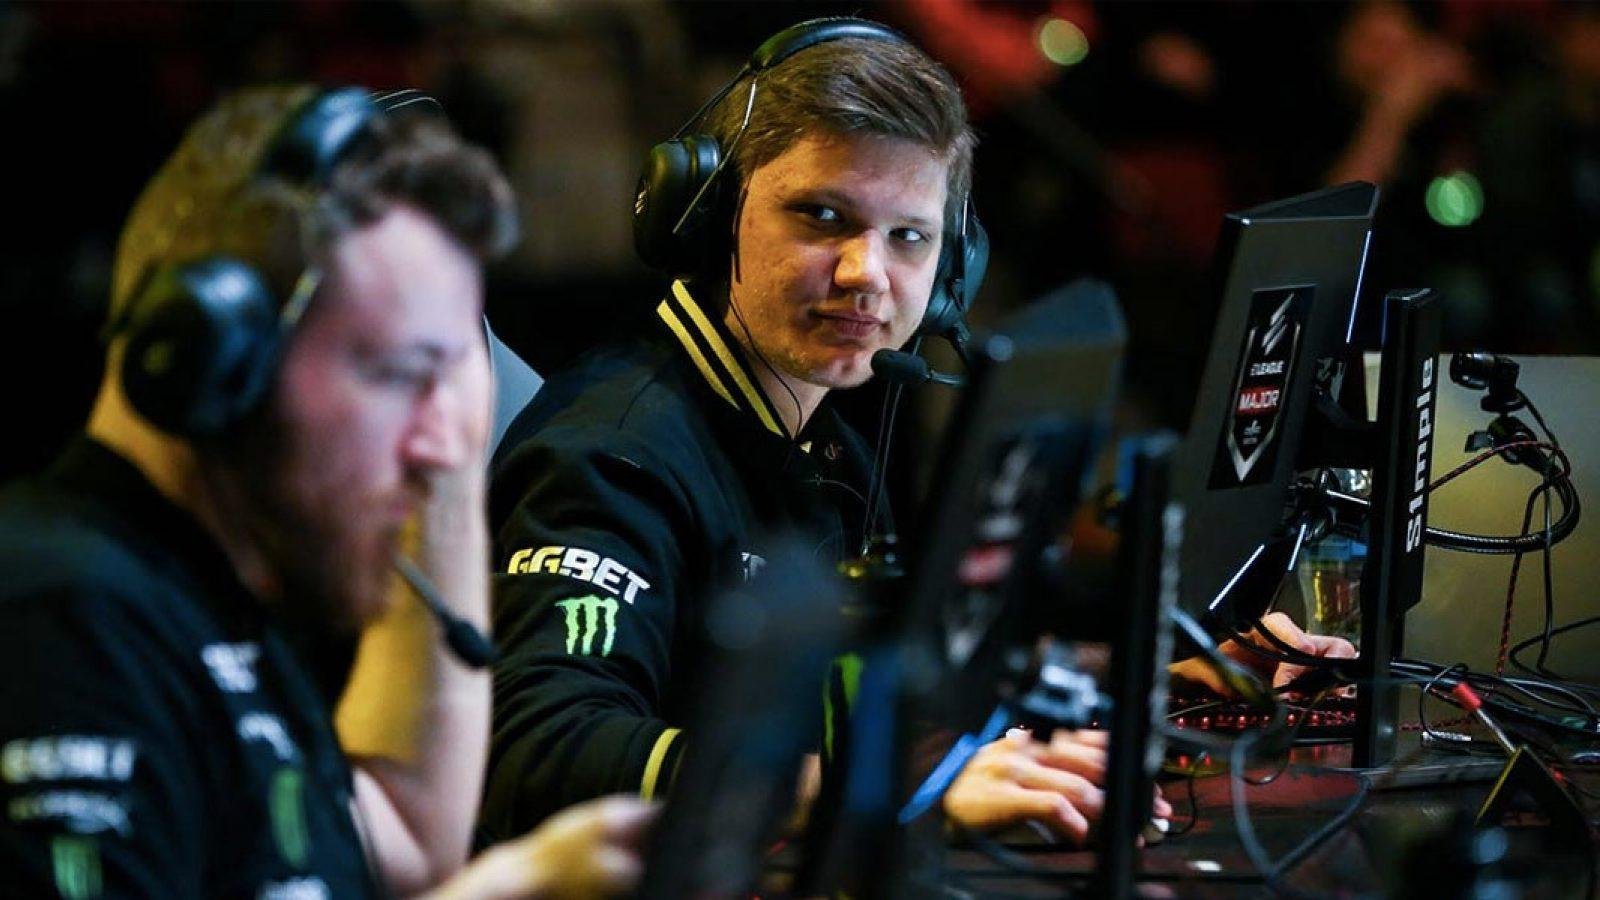 CS:GO superstar s1mple was reportedly very close to signing with